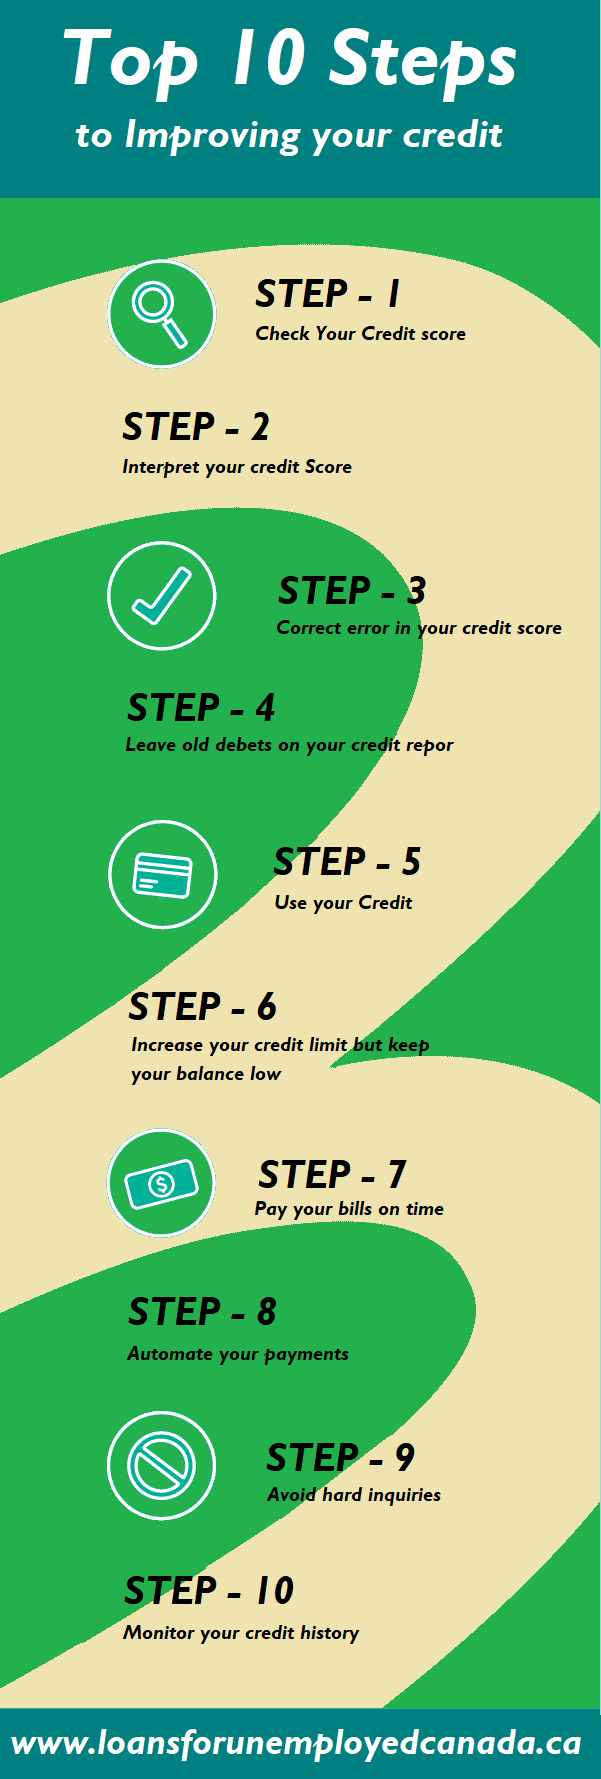 loans for unemployed-canada